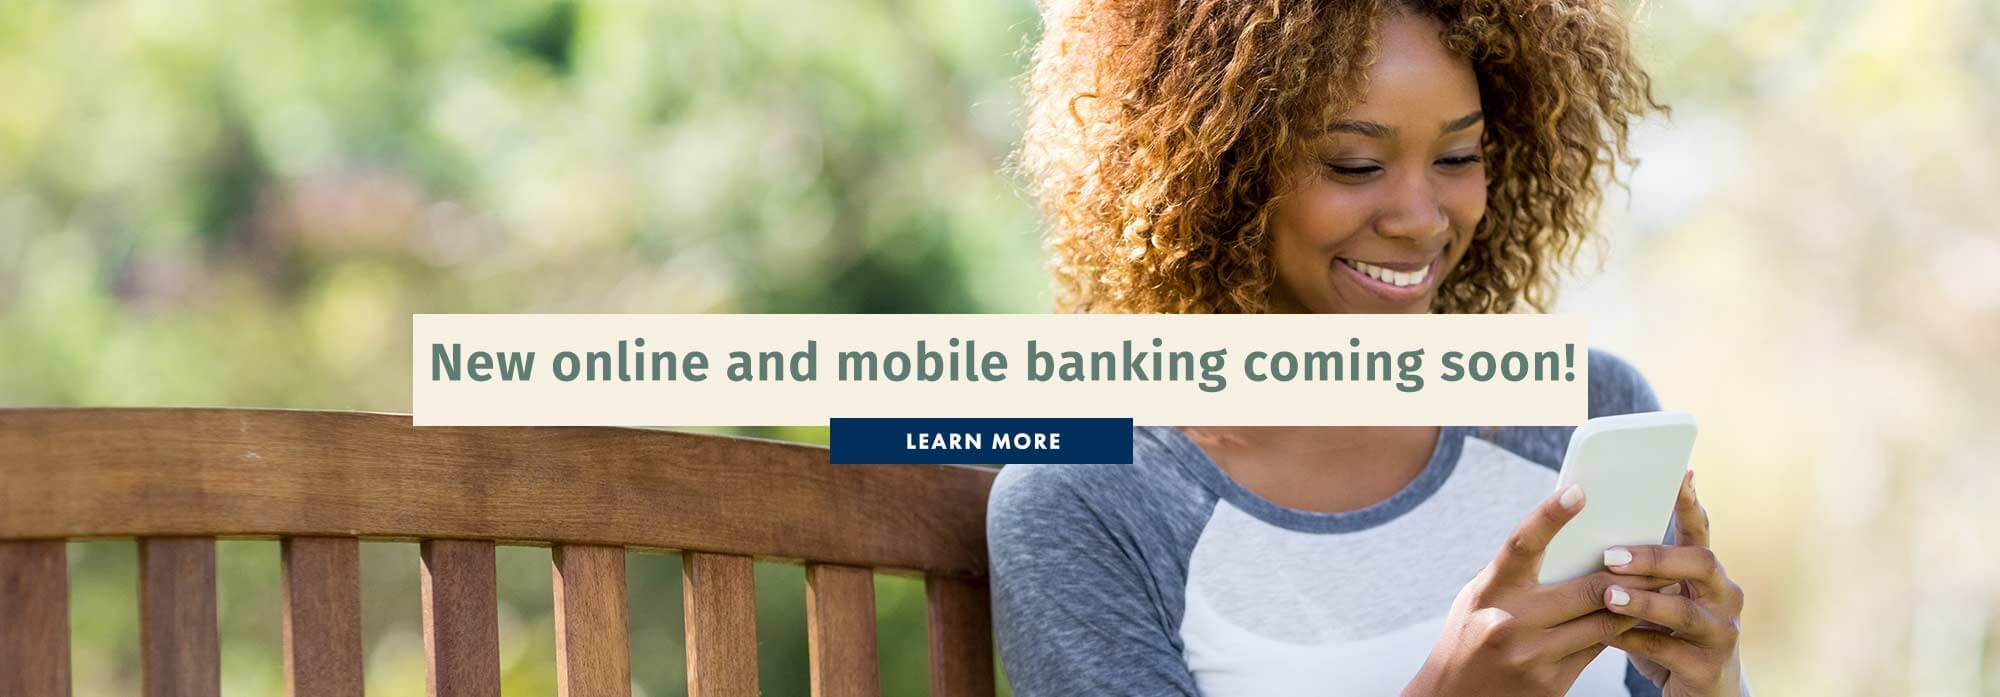 New online and mobile banking coming soon